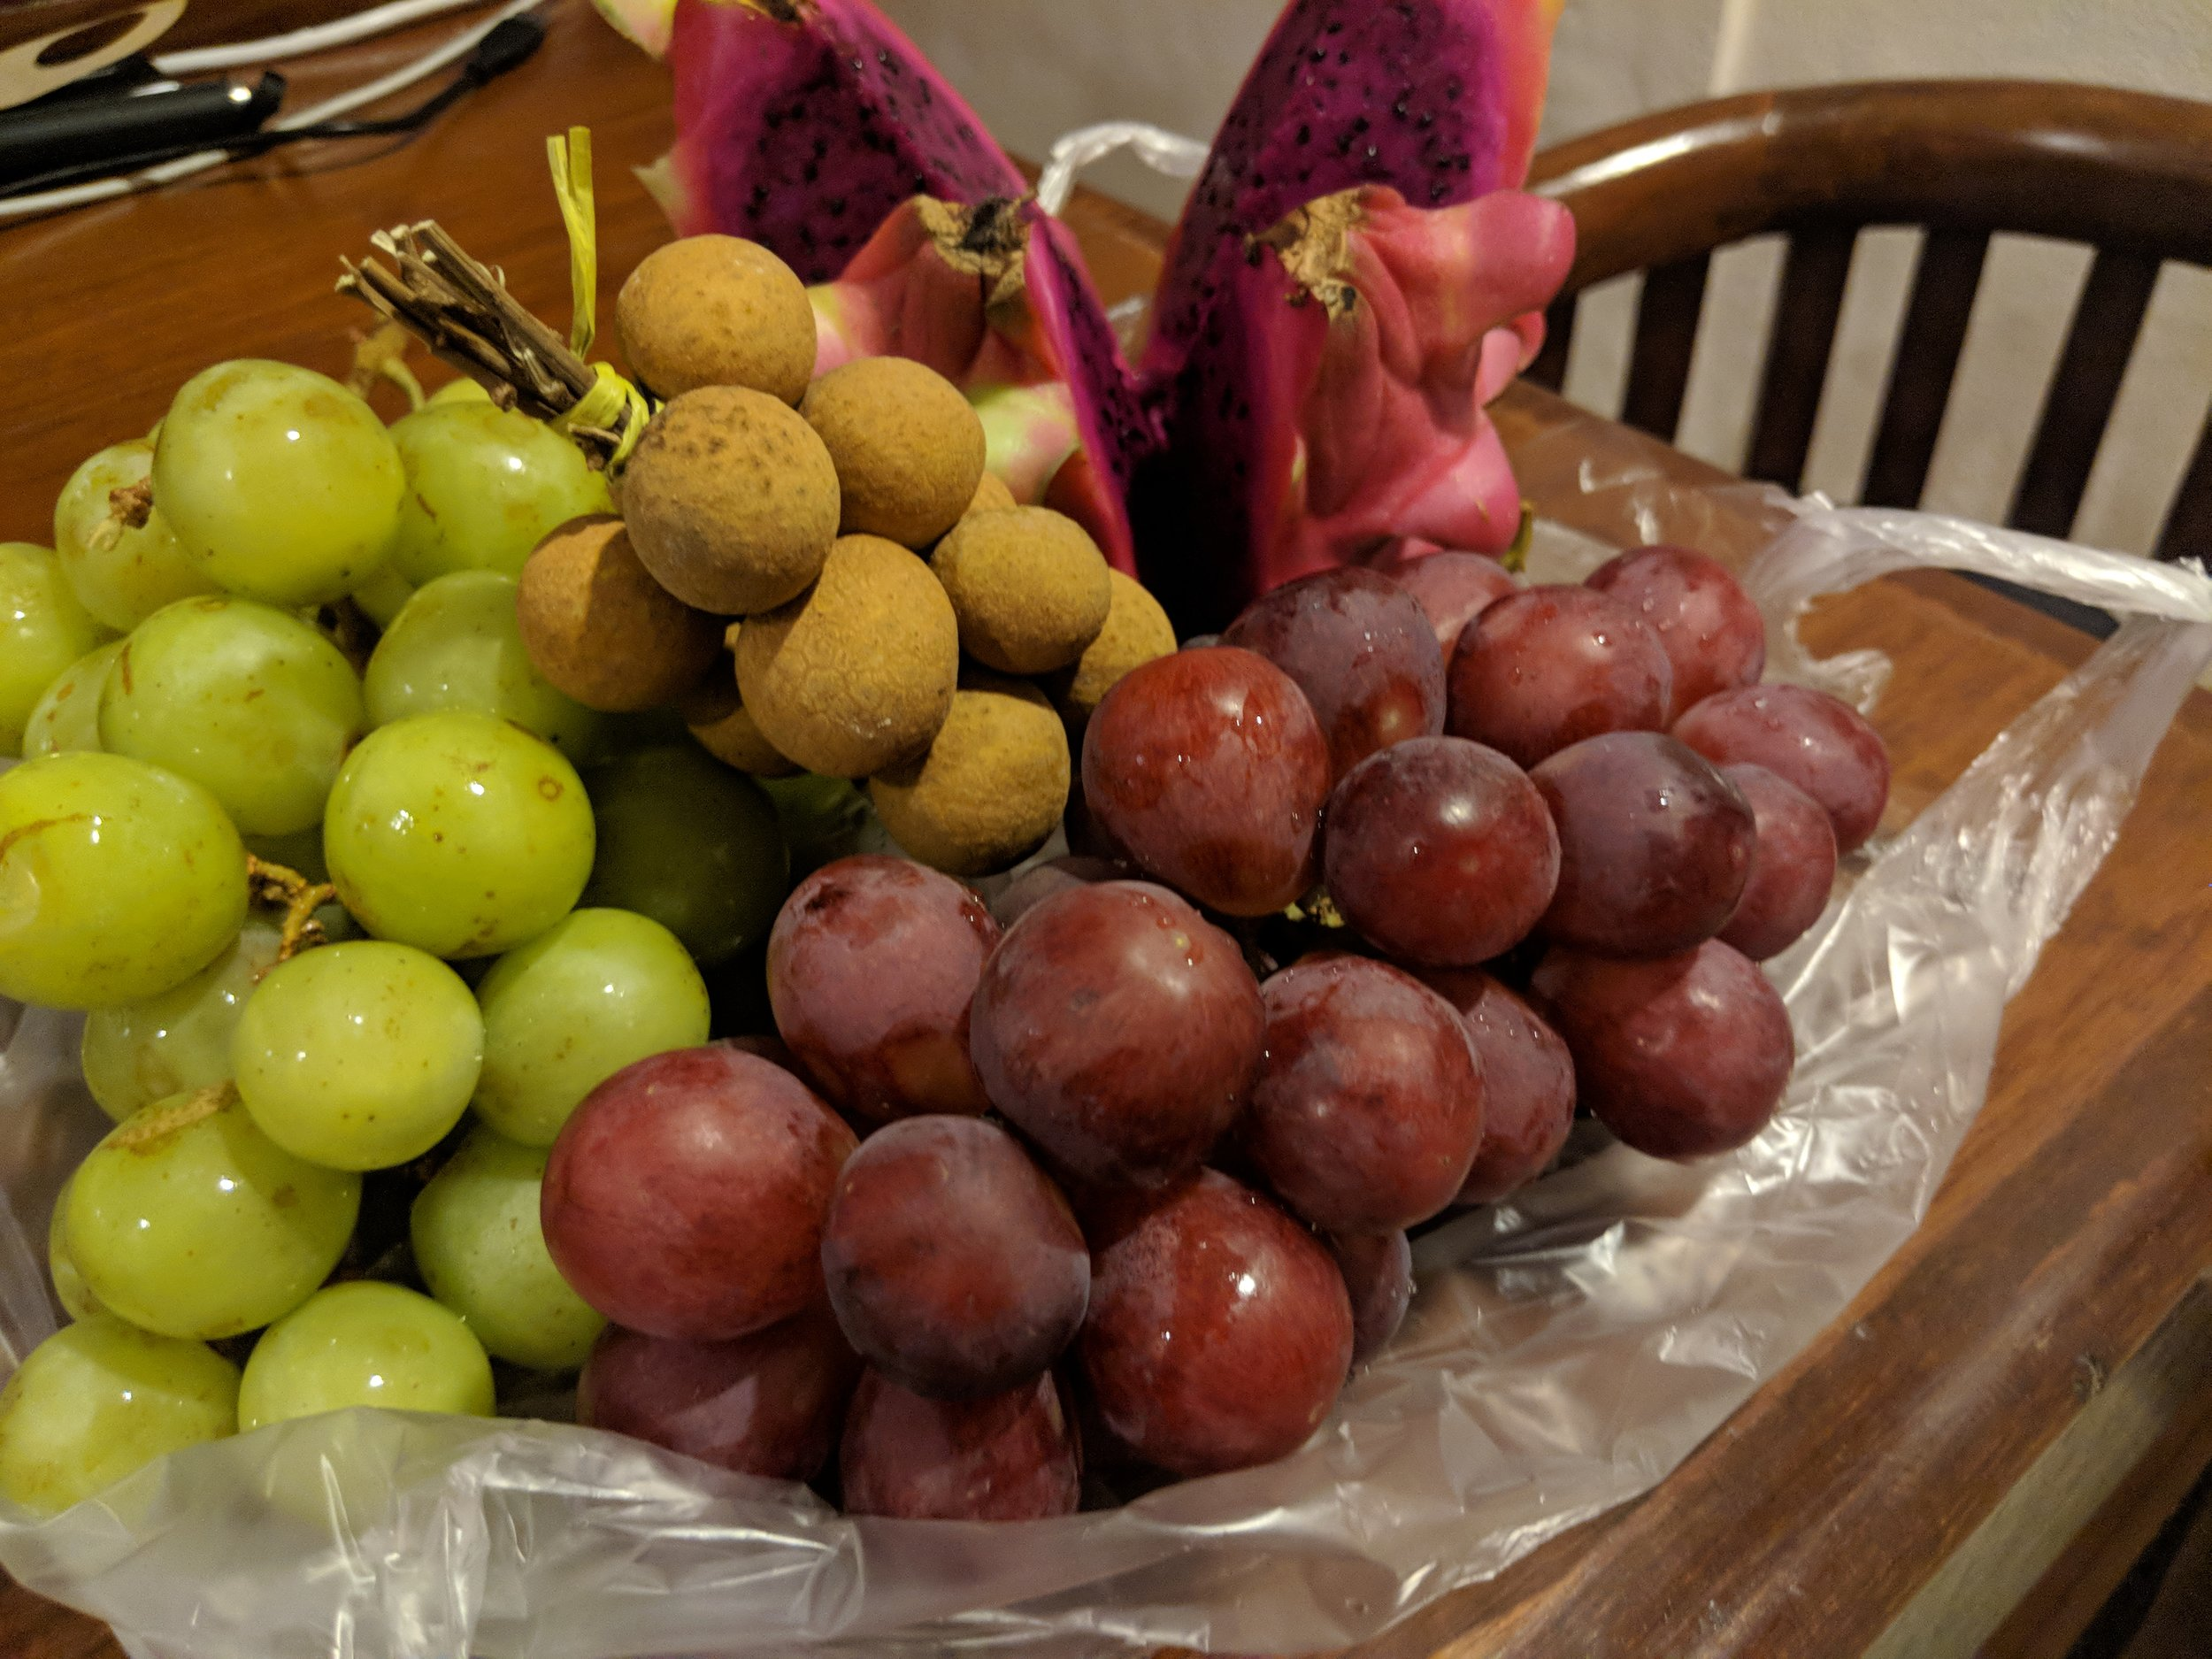 Some Fresh Fruits - From the morning market!